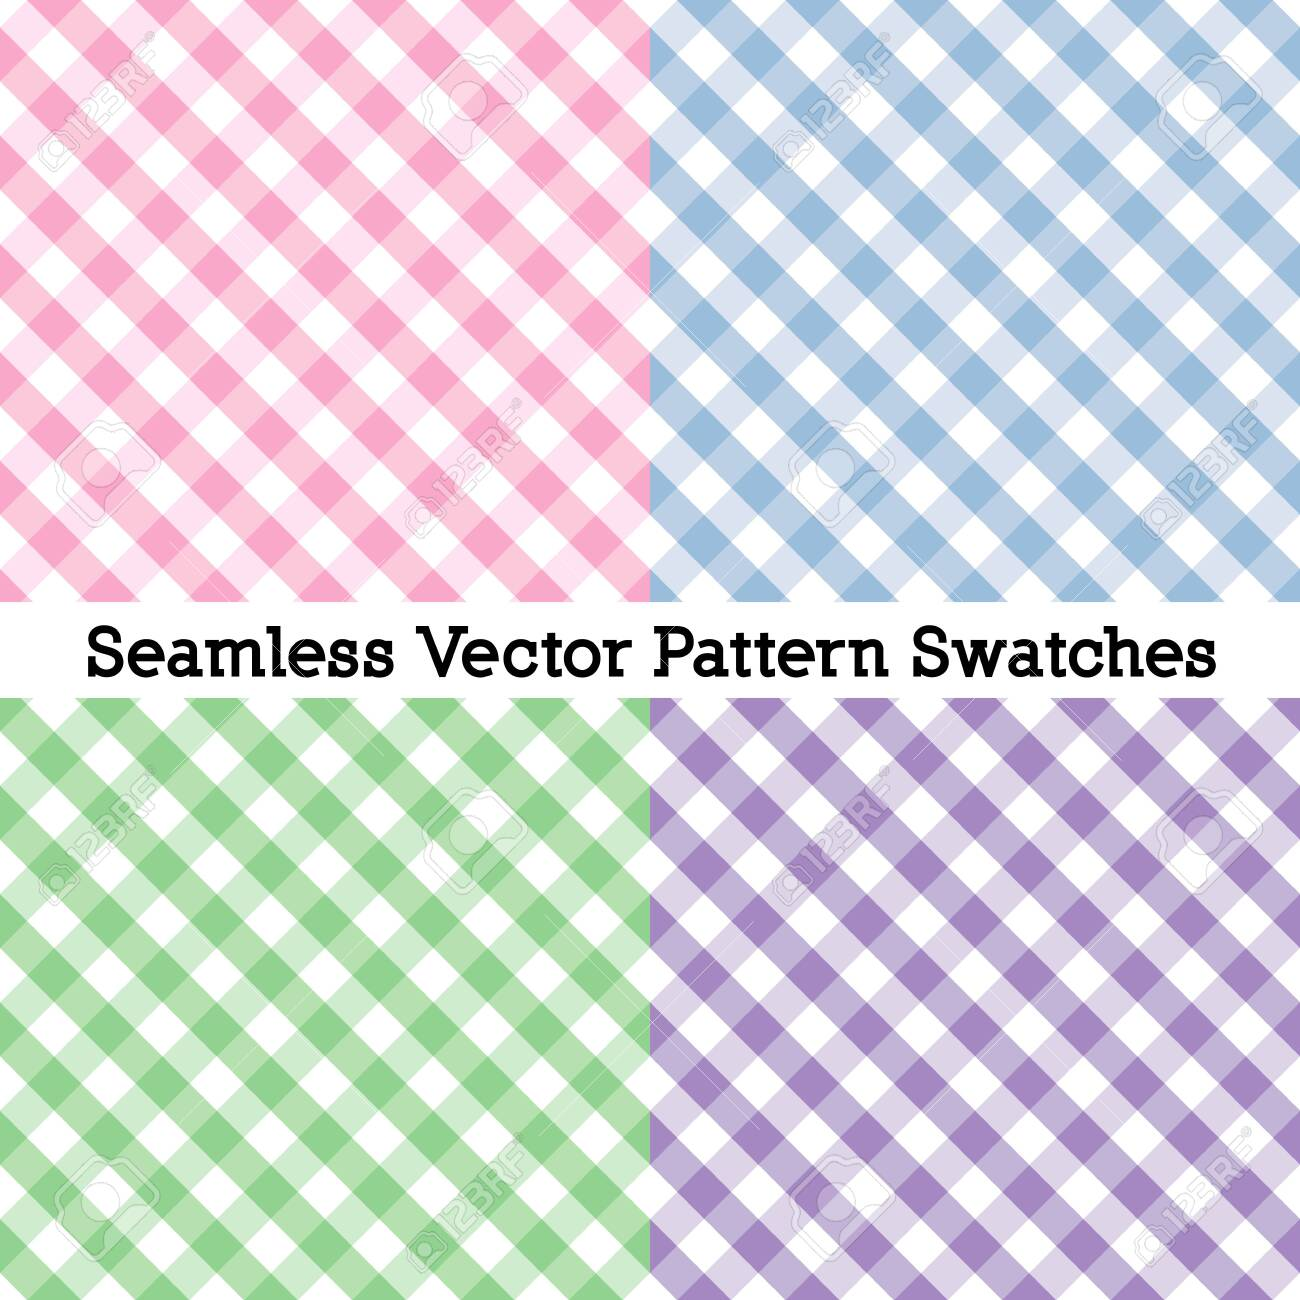 Gingham Cross Weave Seamless Check Patterns - 136310489